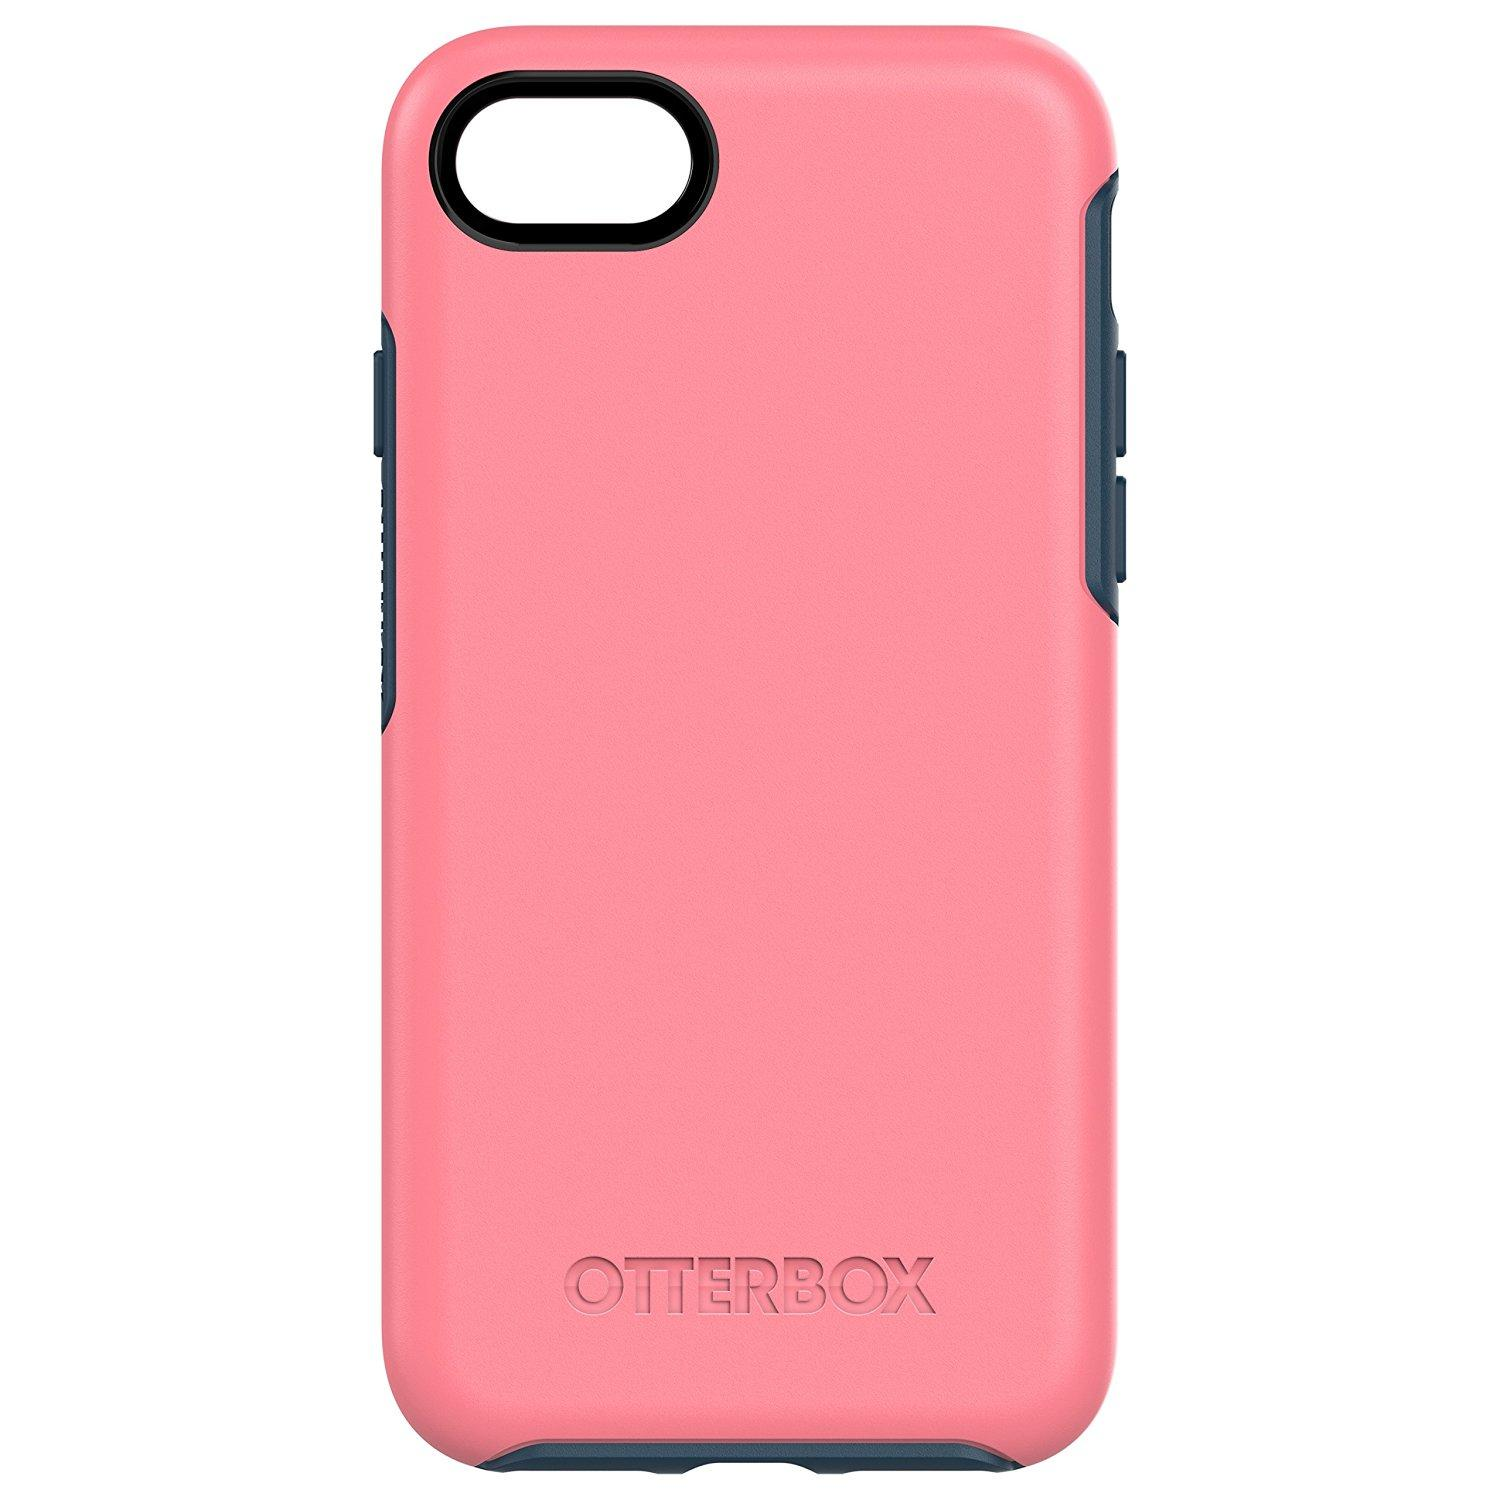 Low Price Otterbox Symmetry Sleek Drop Protection Case For Iphone 7 Iphone 8 Pink Blue